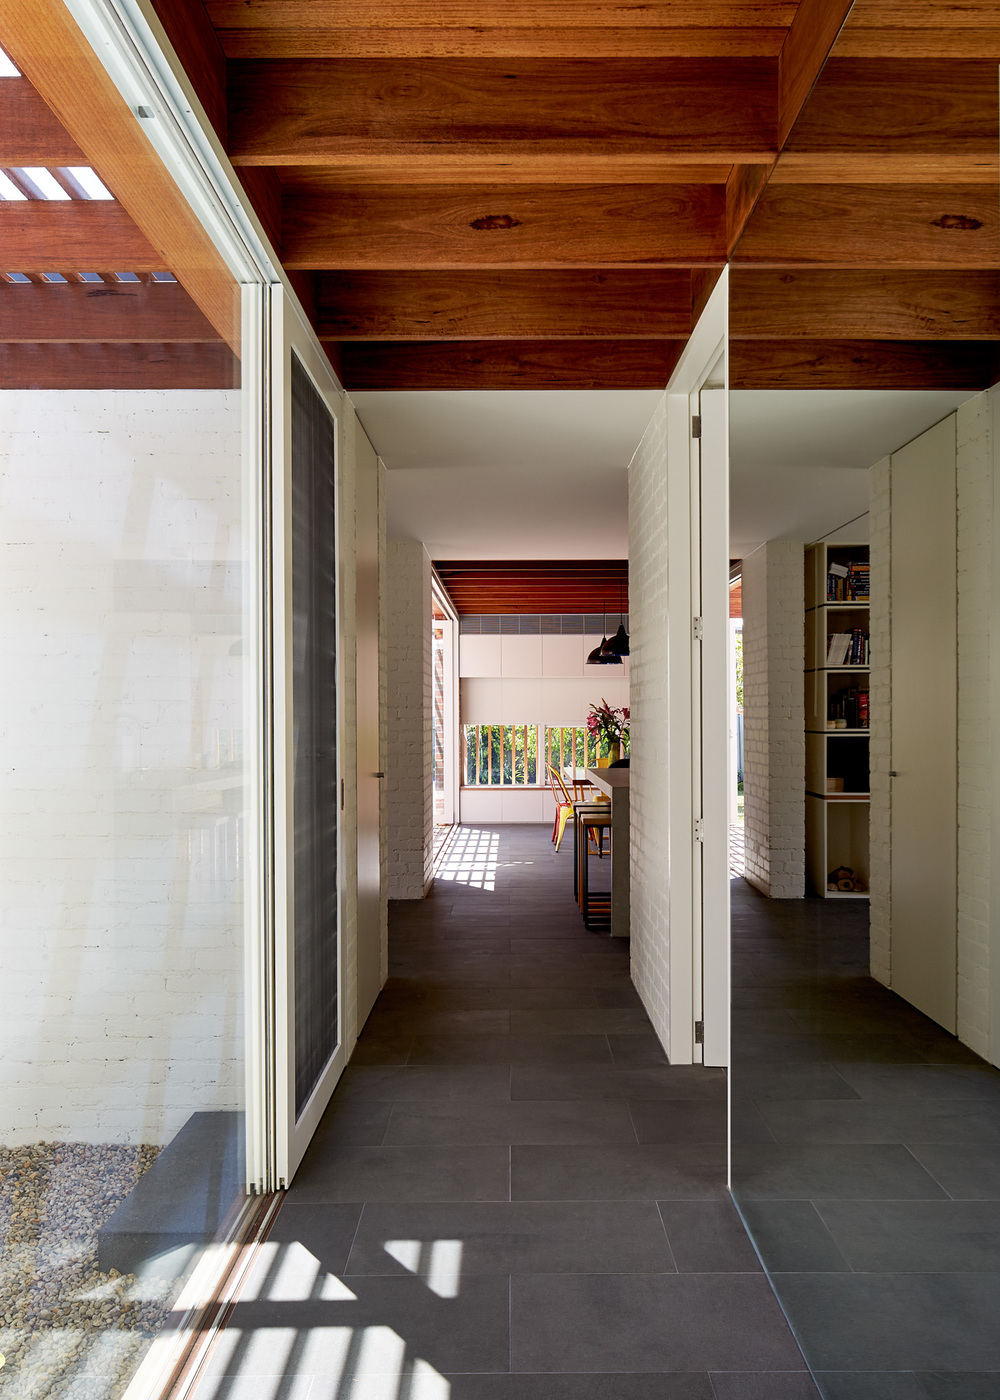 Rich Materials And Light Filled Courtyards Connect Old To New